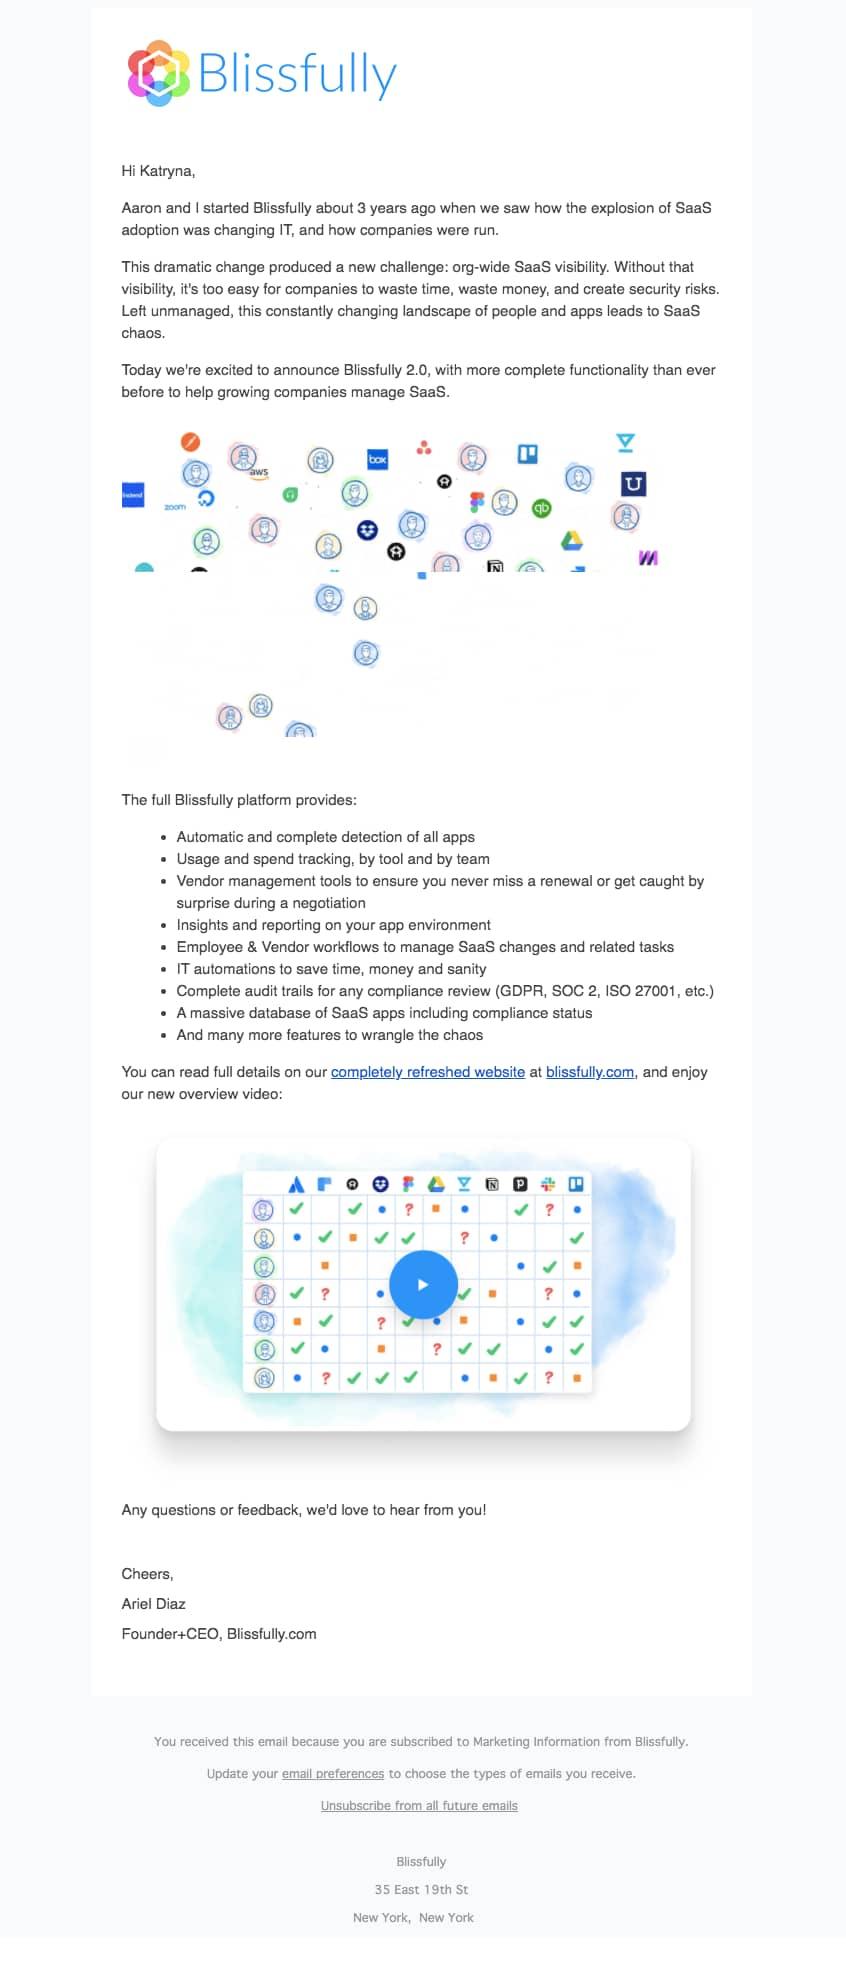 blissfully 2.0 product relaunch announcement email with message from founder